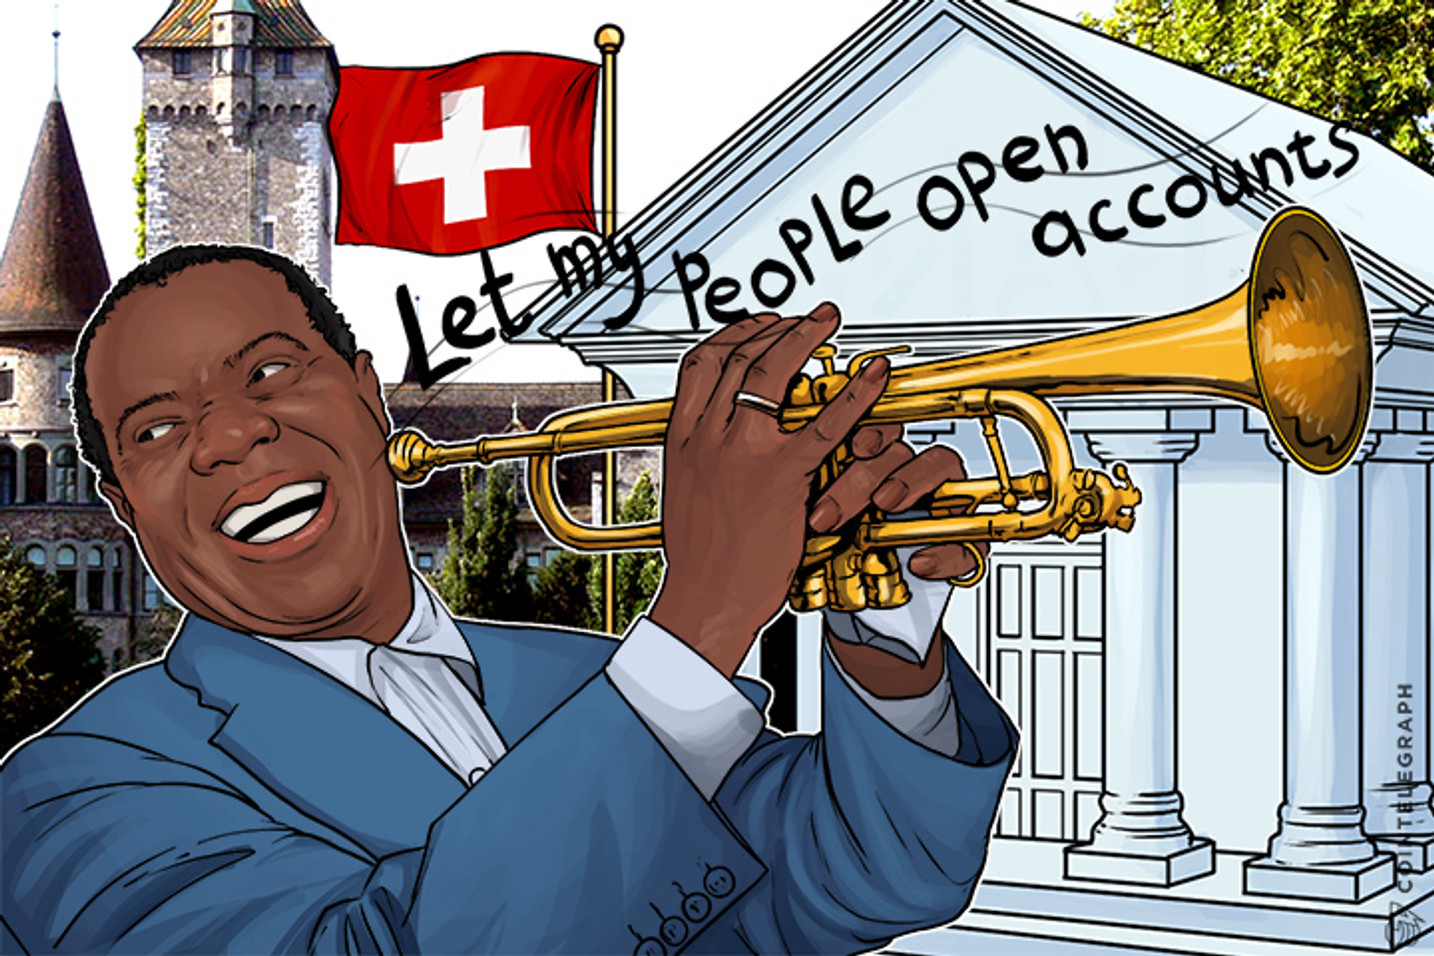 US Clients of Swiss Banks May Turn to Bitcoin As Swiss Stop Accepting US Clients